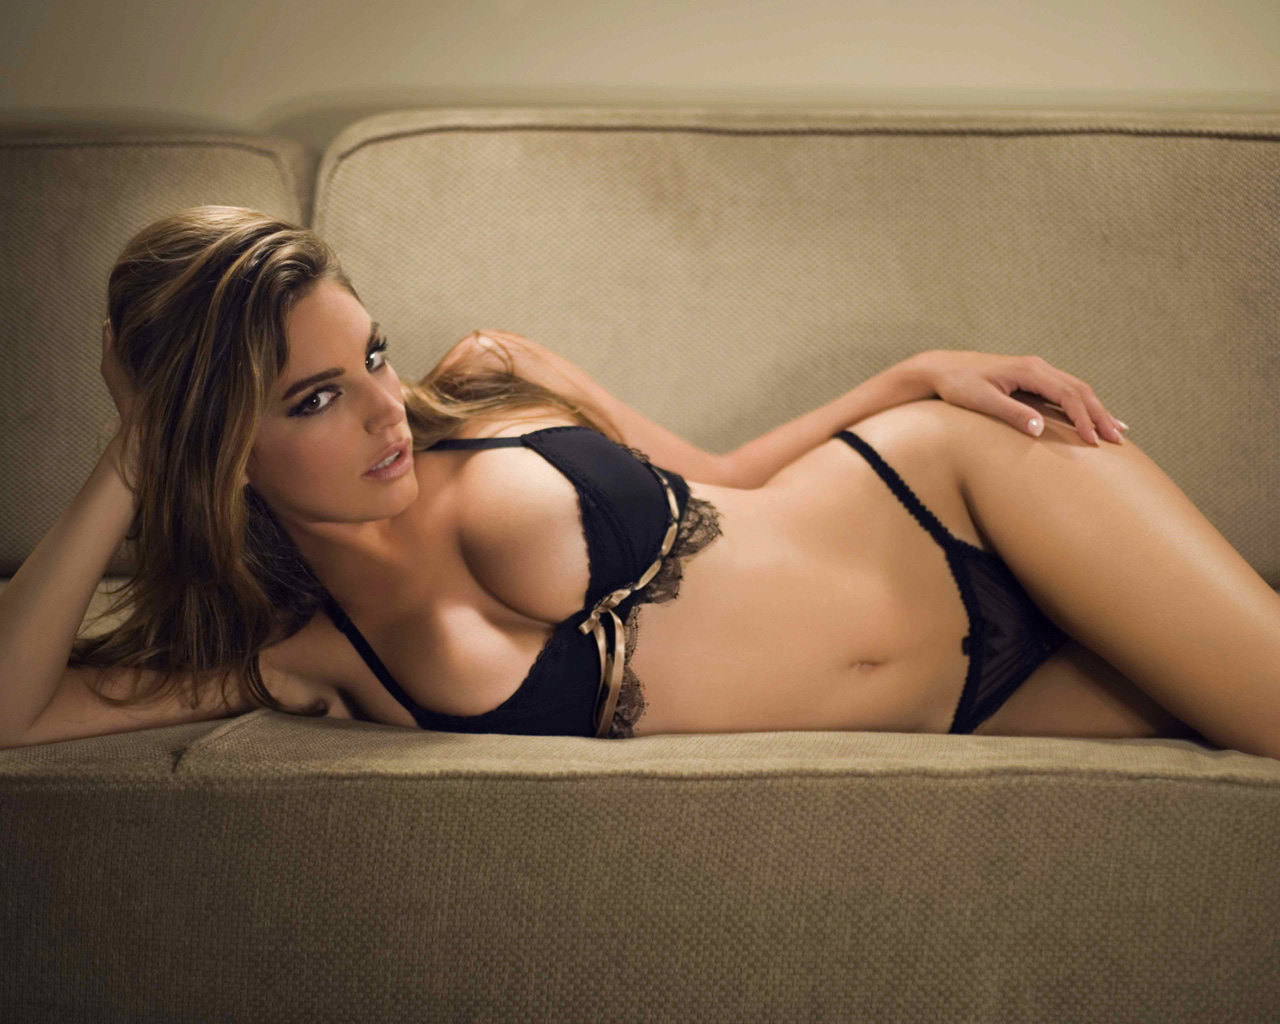 http://www.anorak.co.uk/wp-content/gallery/kelly-brook-nsfw/kelly-brook.jpg